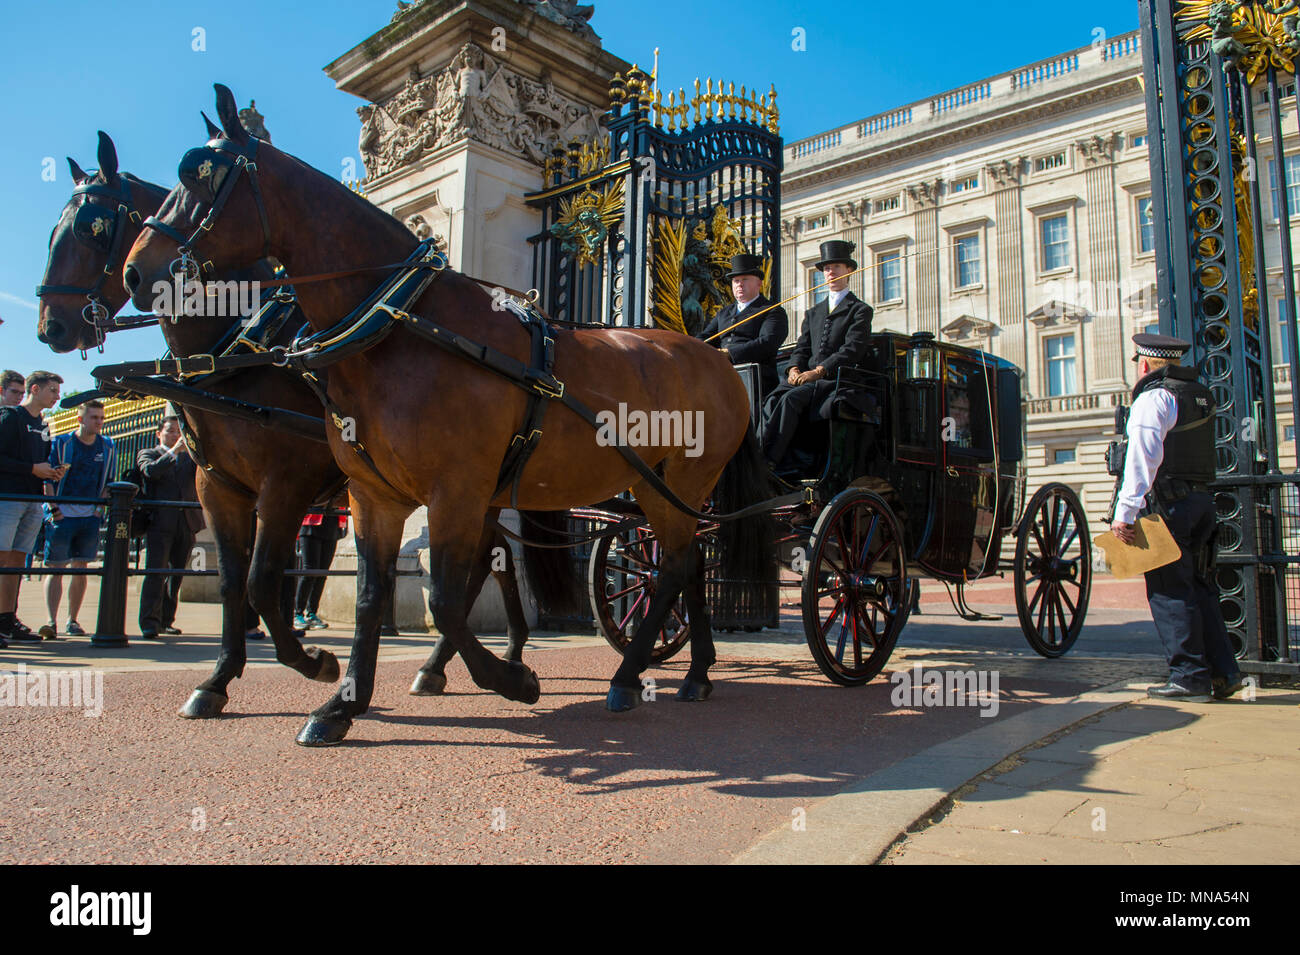 LONDON - MAY 15, 2018: Horse and carriage passes out of the ornate gates Buckingham Palace - Stock Image